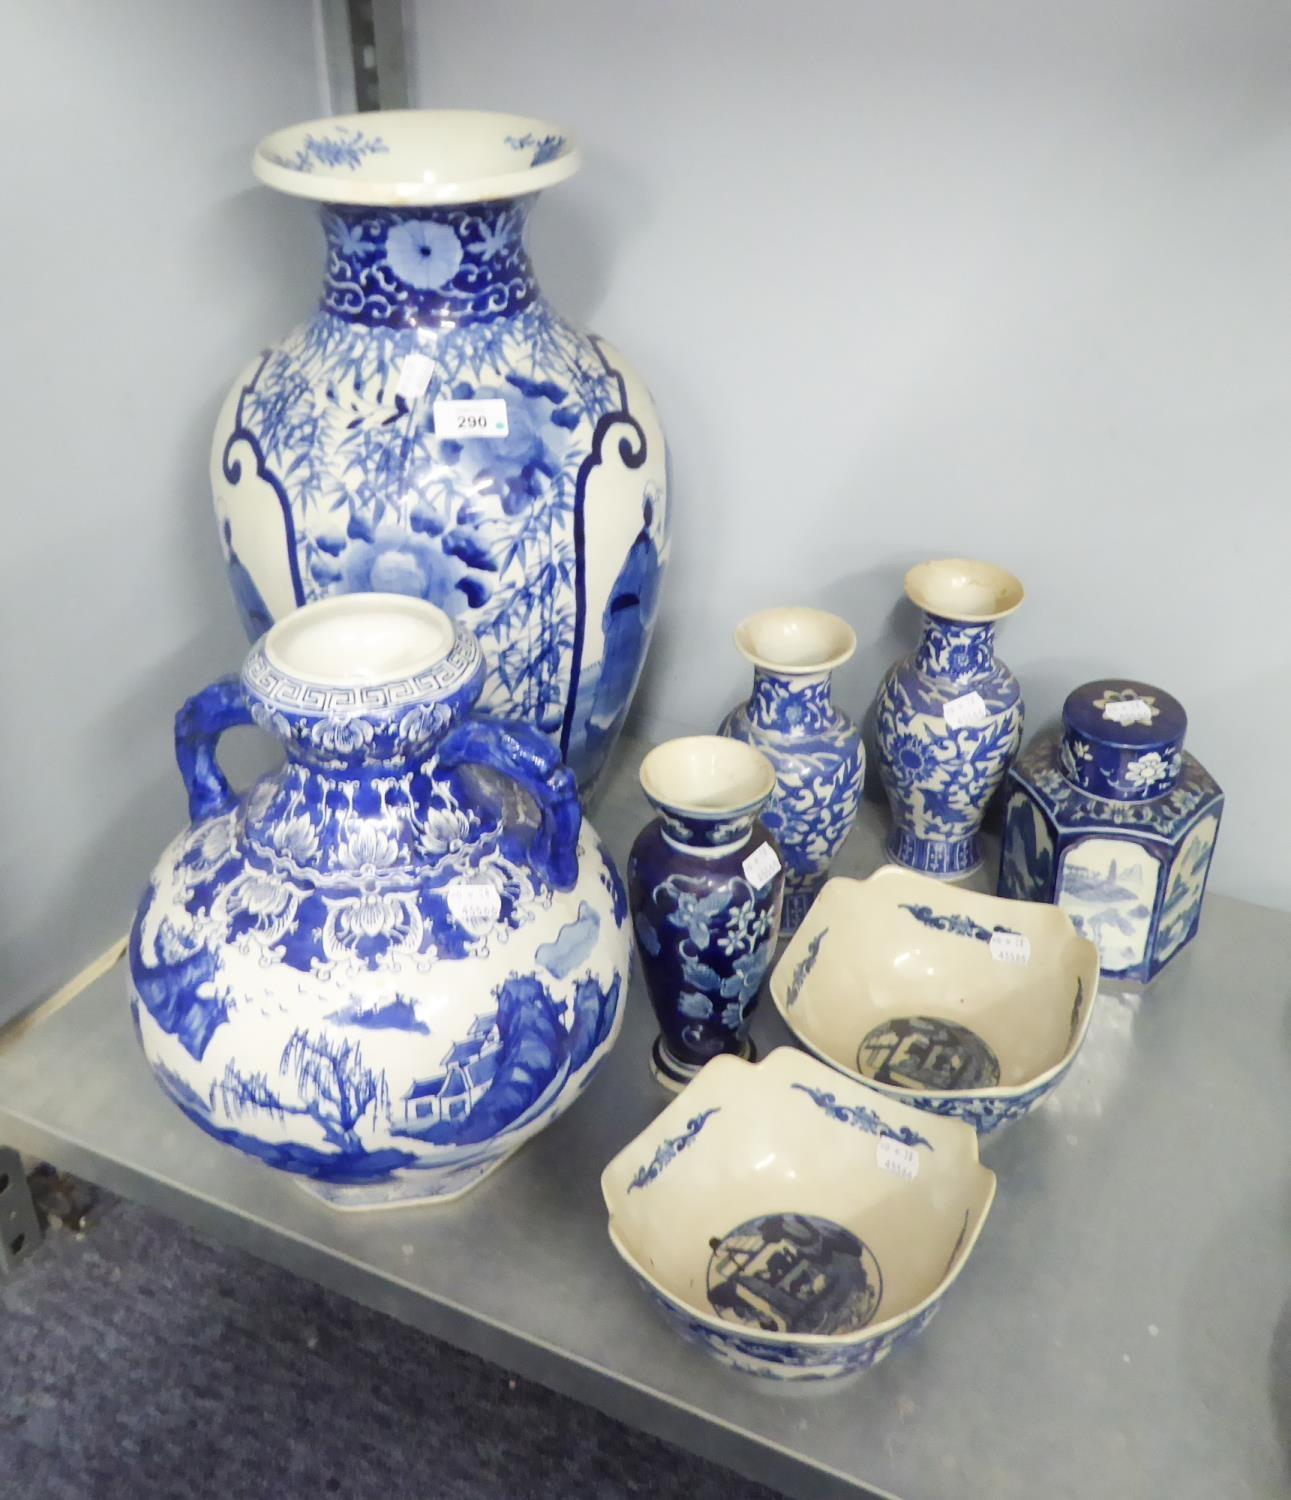 """Lot 290 - PAIR OF ORIENTAL VASES, LARGE ORIENTAL VASE 19"""" HIGH, A TWO HANDLE WASE, TWO ORIENTAL BOWLS AND A"""